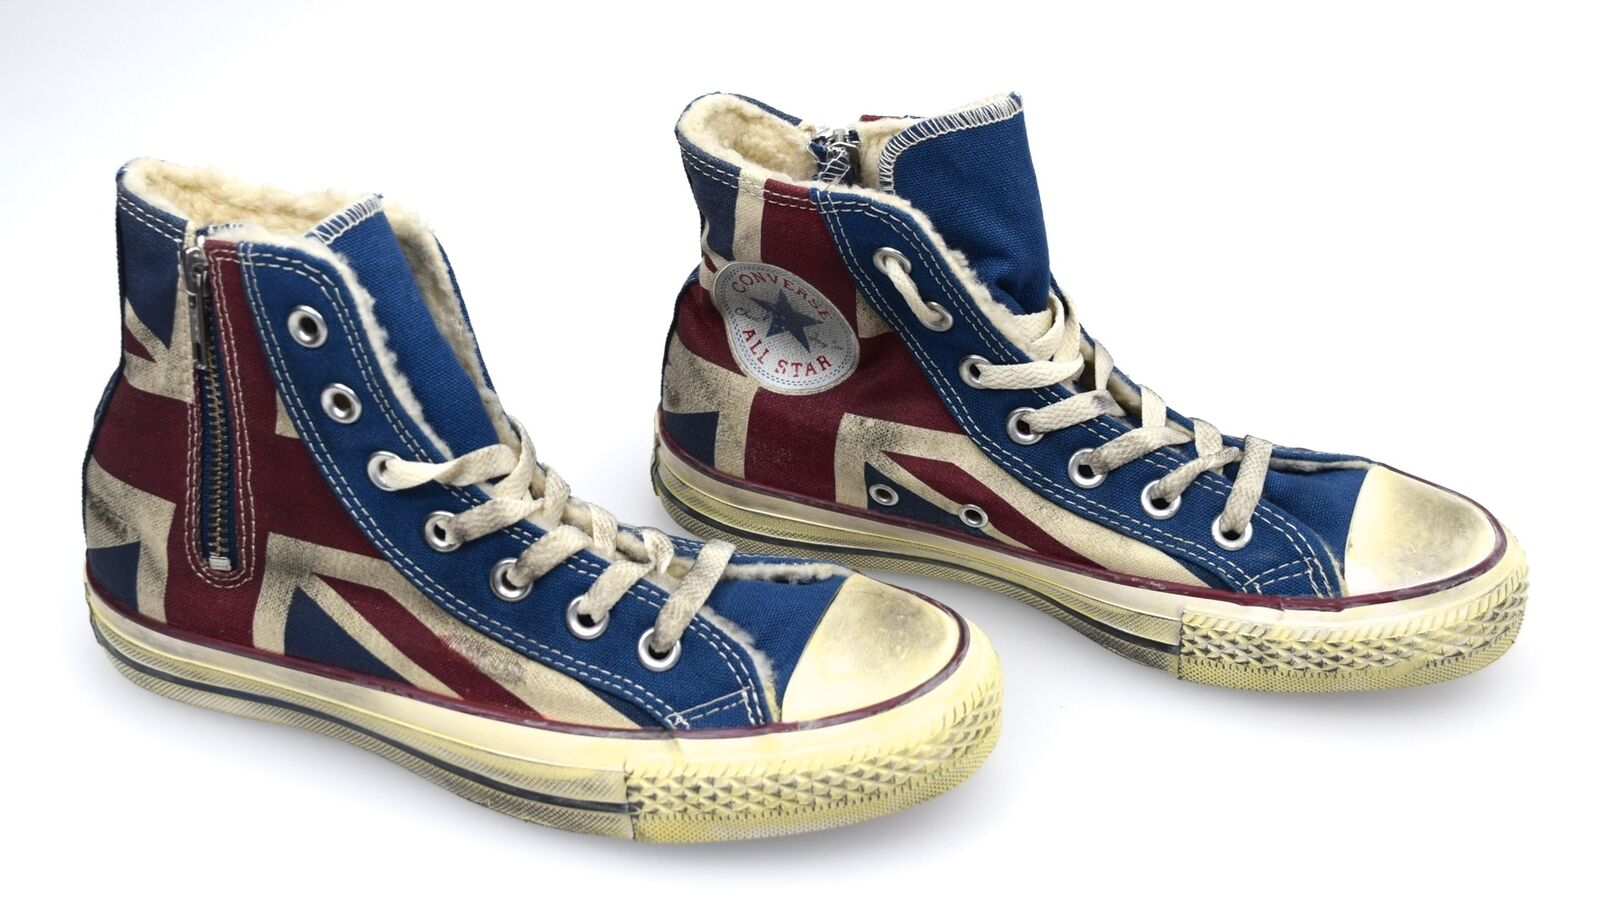 CONVERSE VINTAGE ALL STAR DONNA SCARPA SNEAKER BANDIERA INGLESE VINTAGE CONVERSE ART. 1C503 1ed419